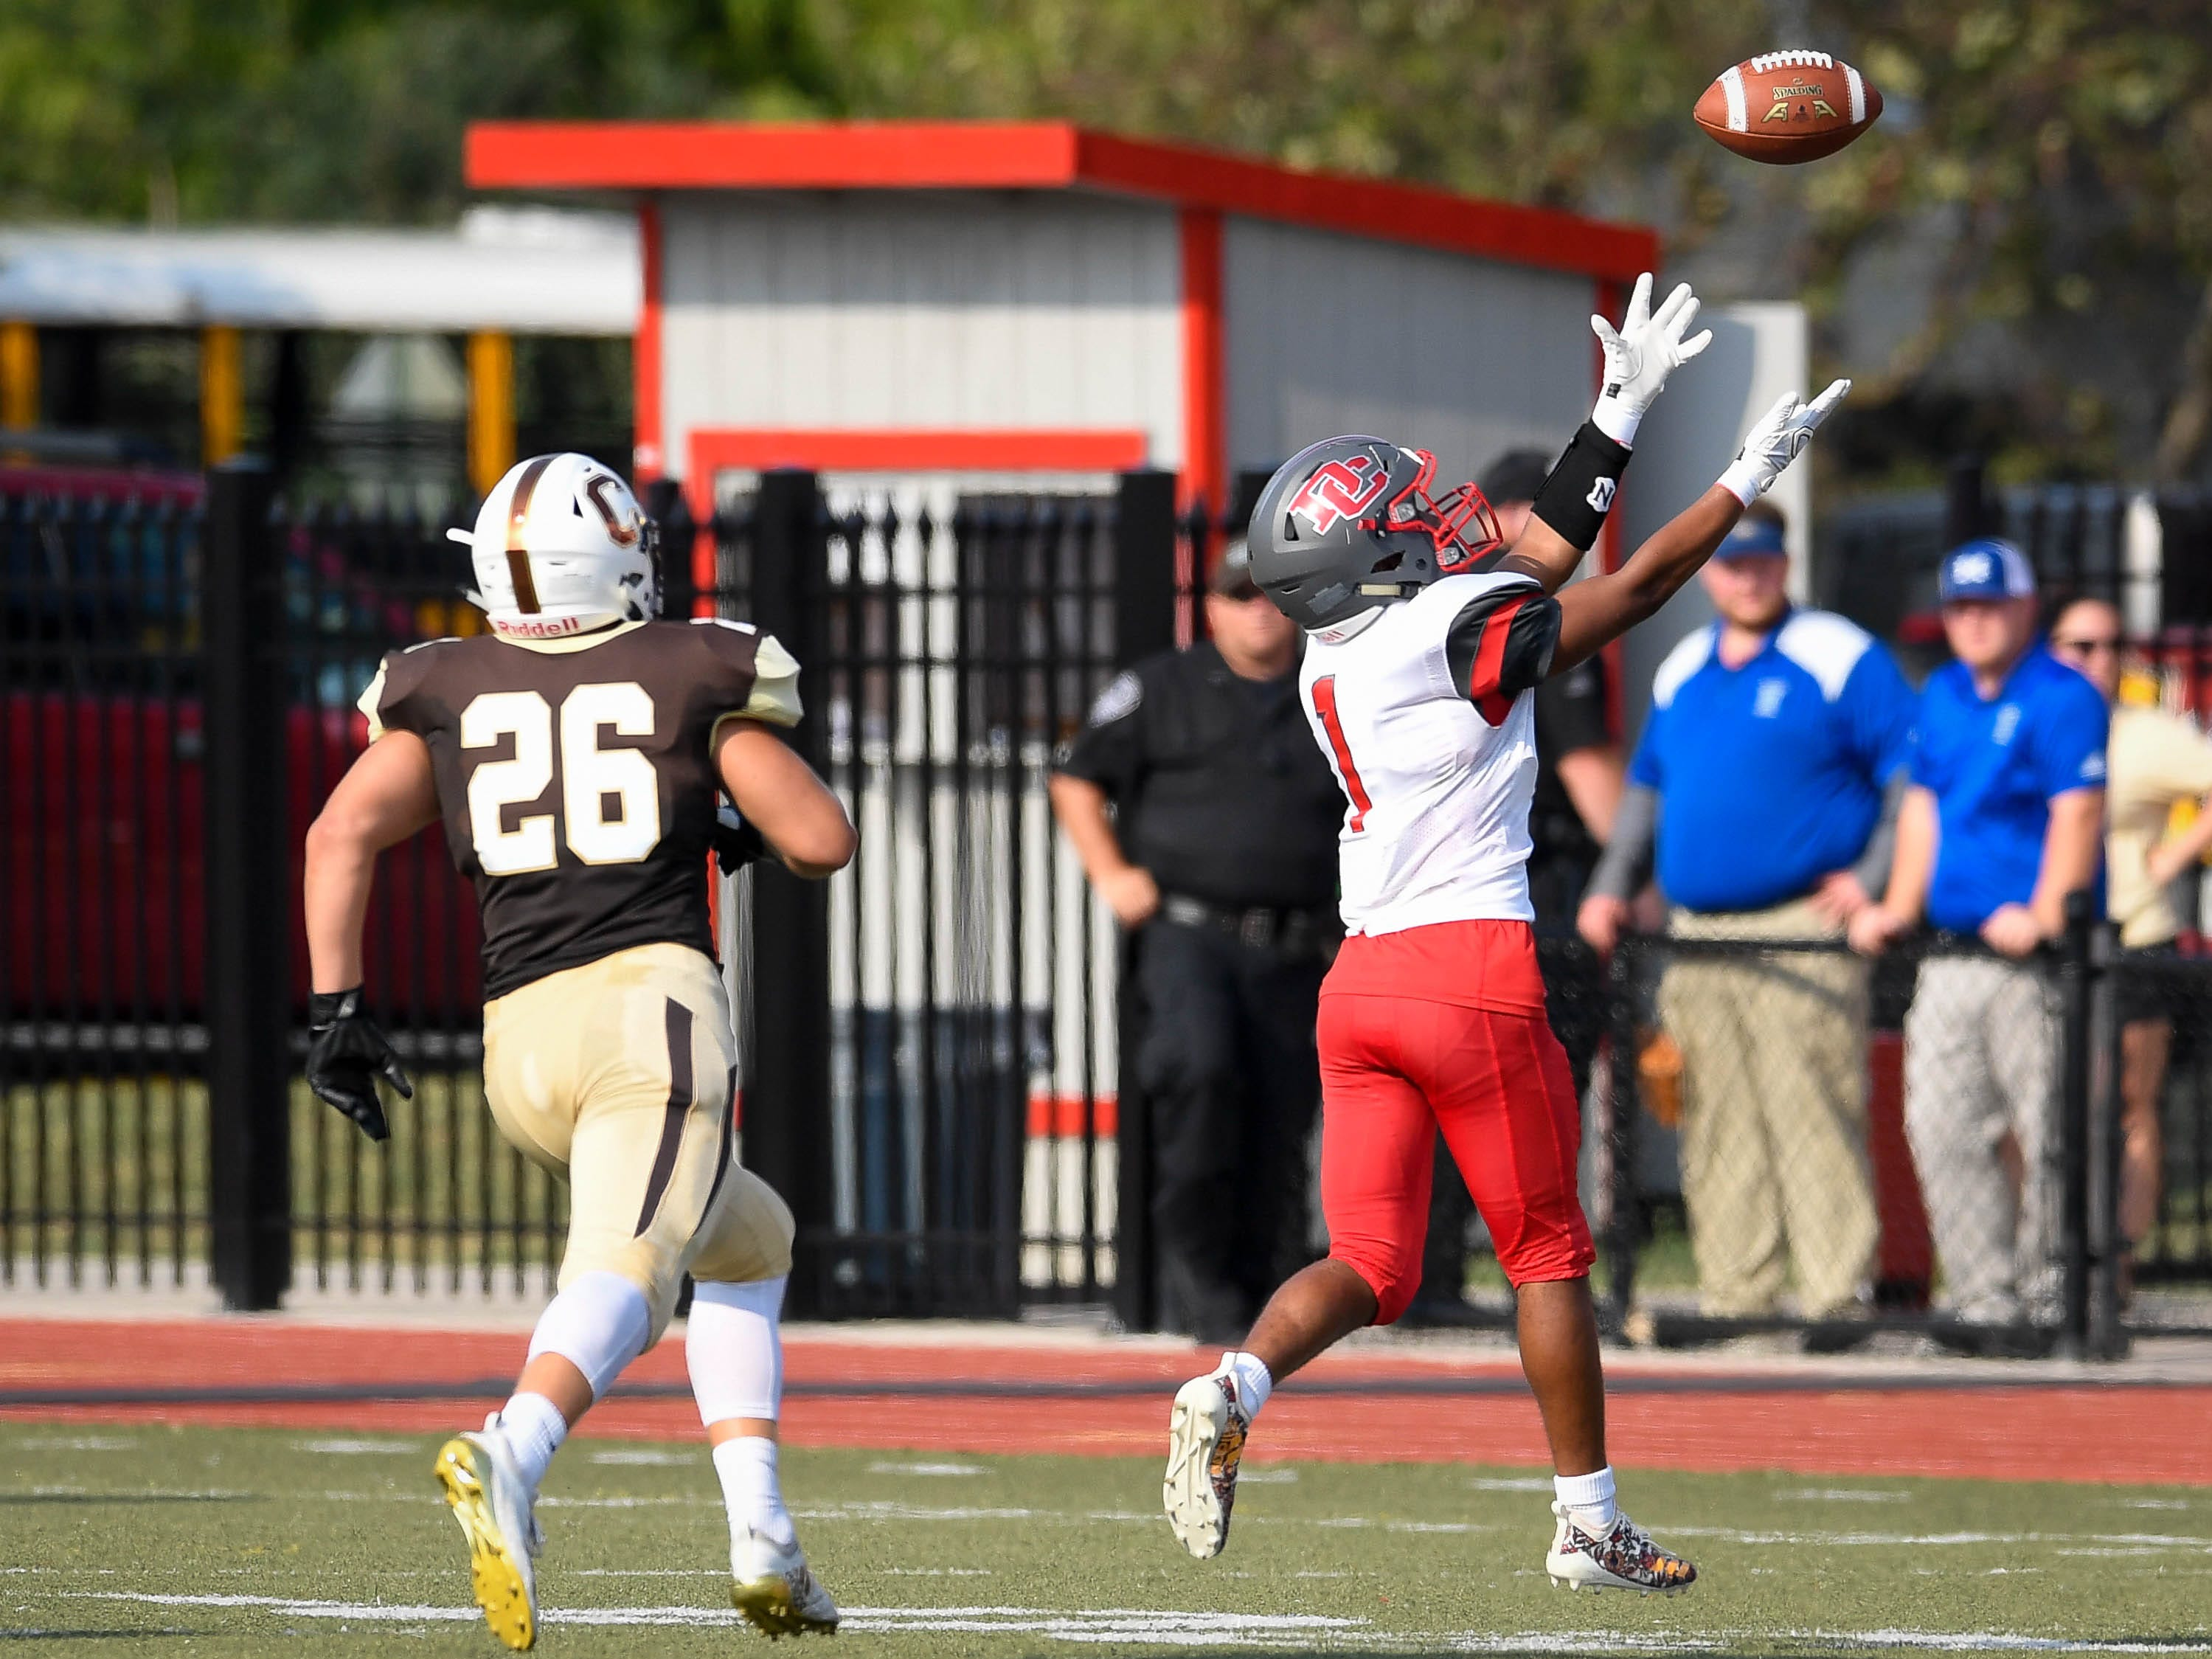 Daviess County's Jaquarius Fletcher (1) tries in vain to pull in a corner pass to the end zone as the Daviess County Panthers play the Evansville Central Bears at the Border Bowl played at Enlow Field in Evansville Saturday, August 25, 2018.